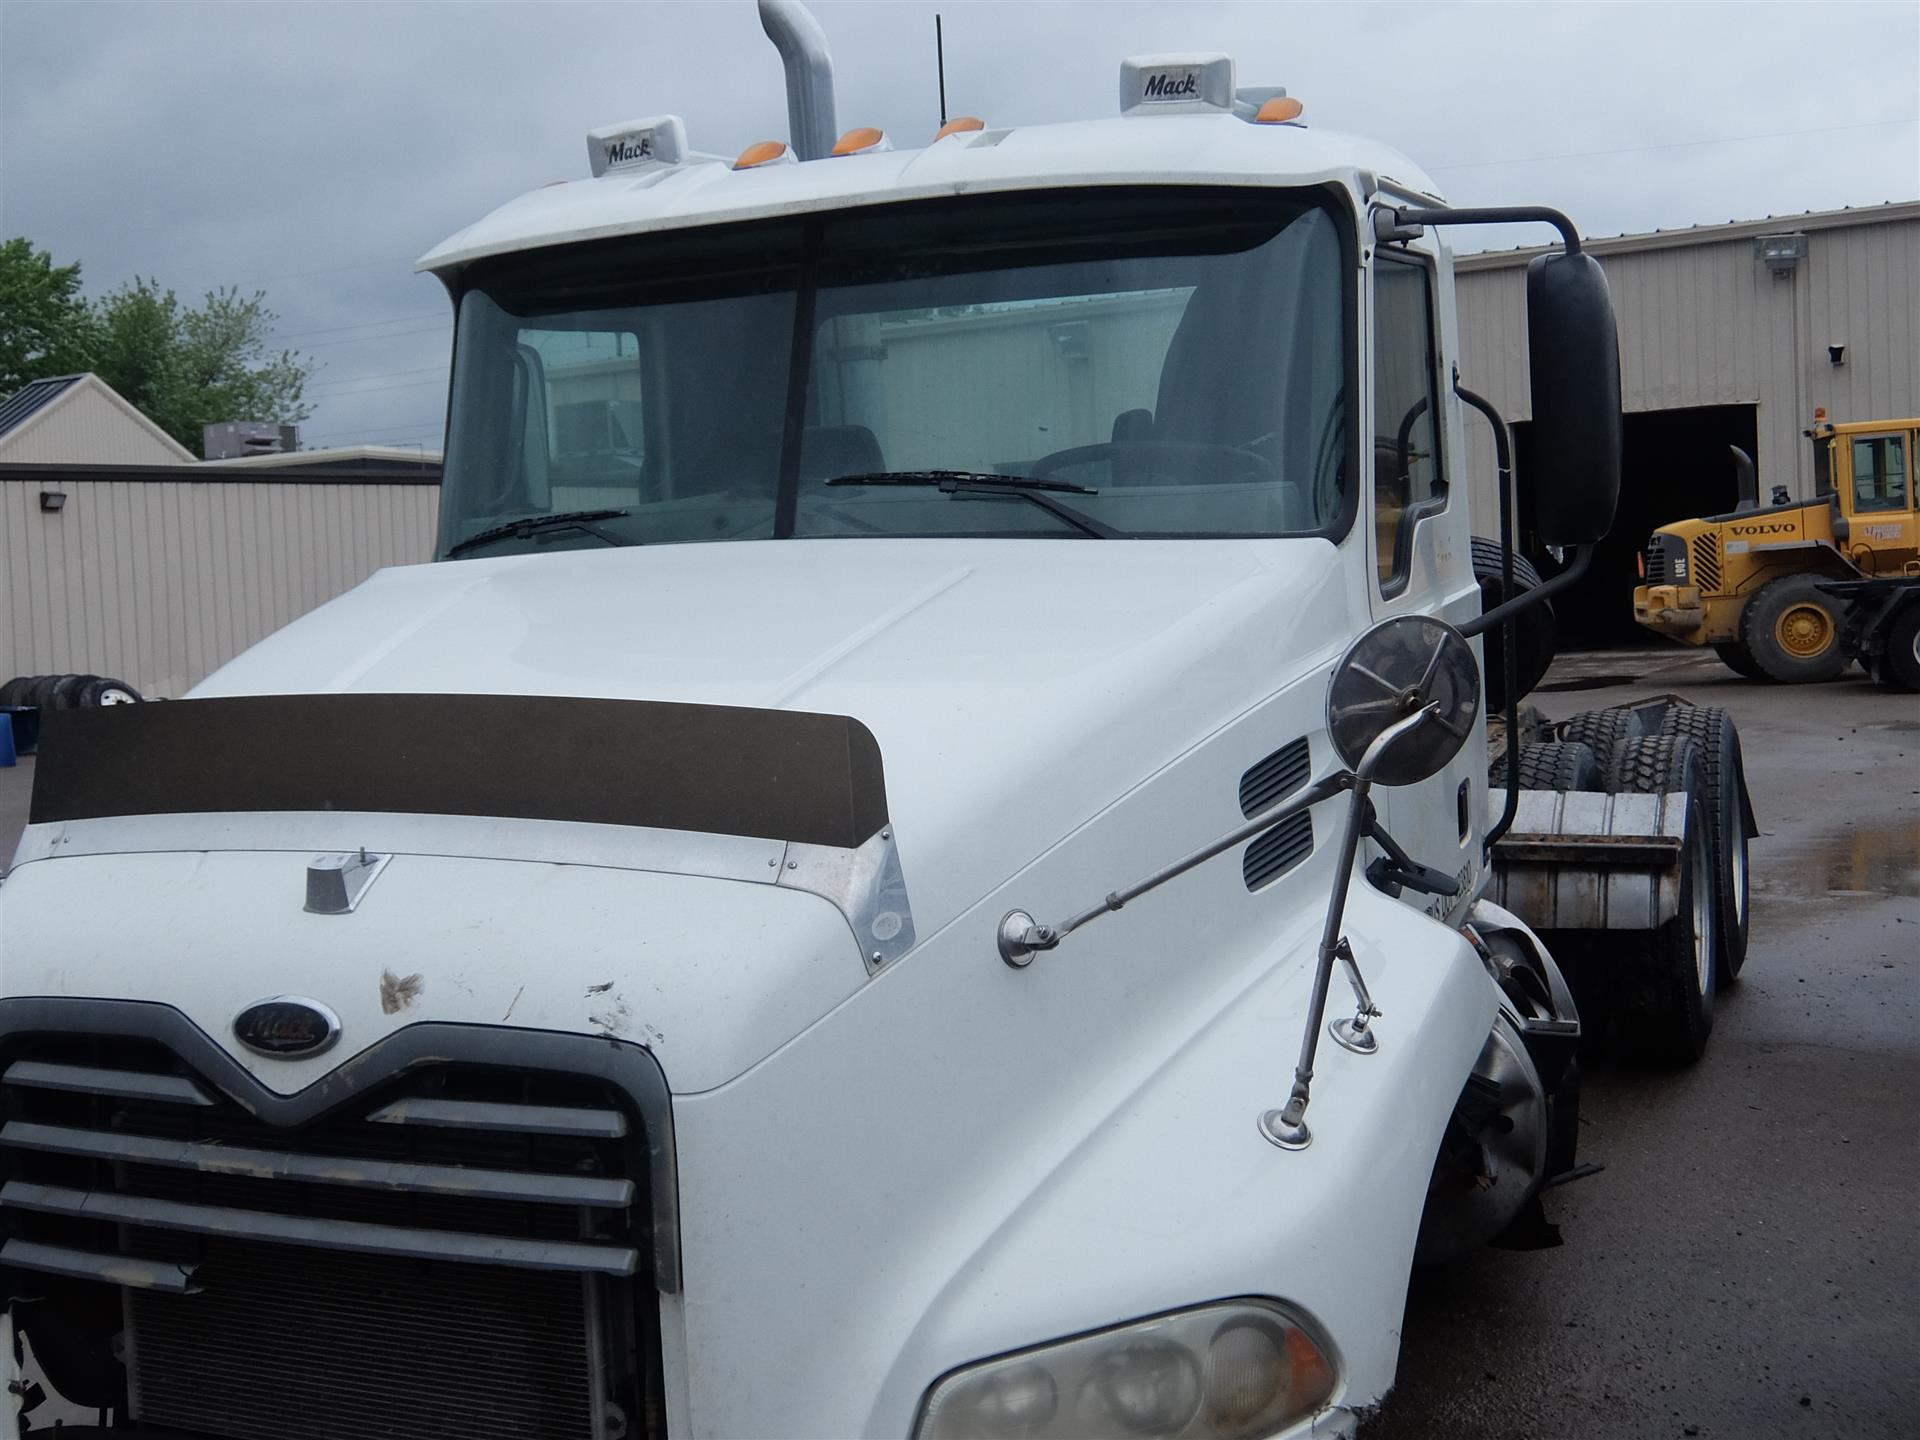 2004 Mack cx613 for sale-59138547